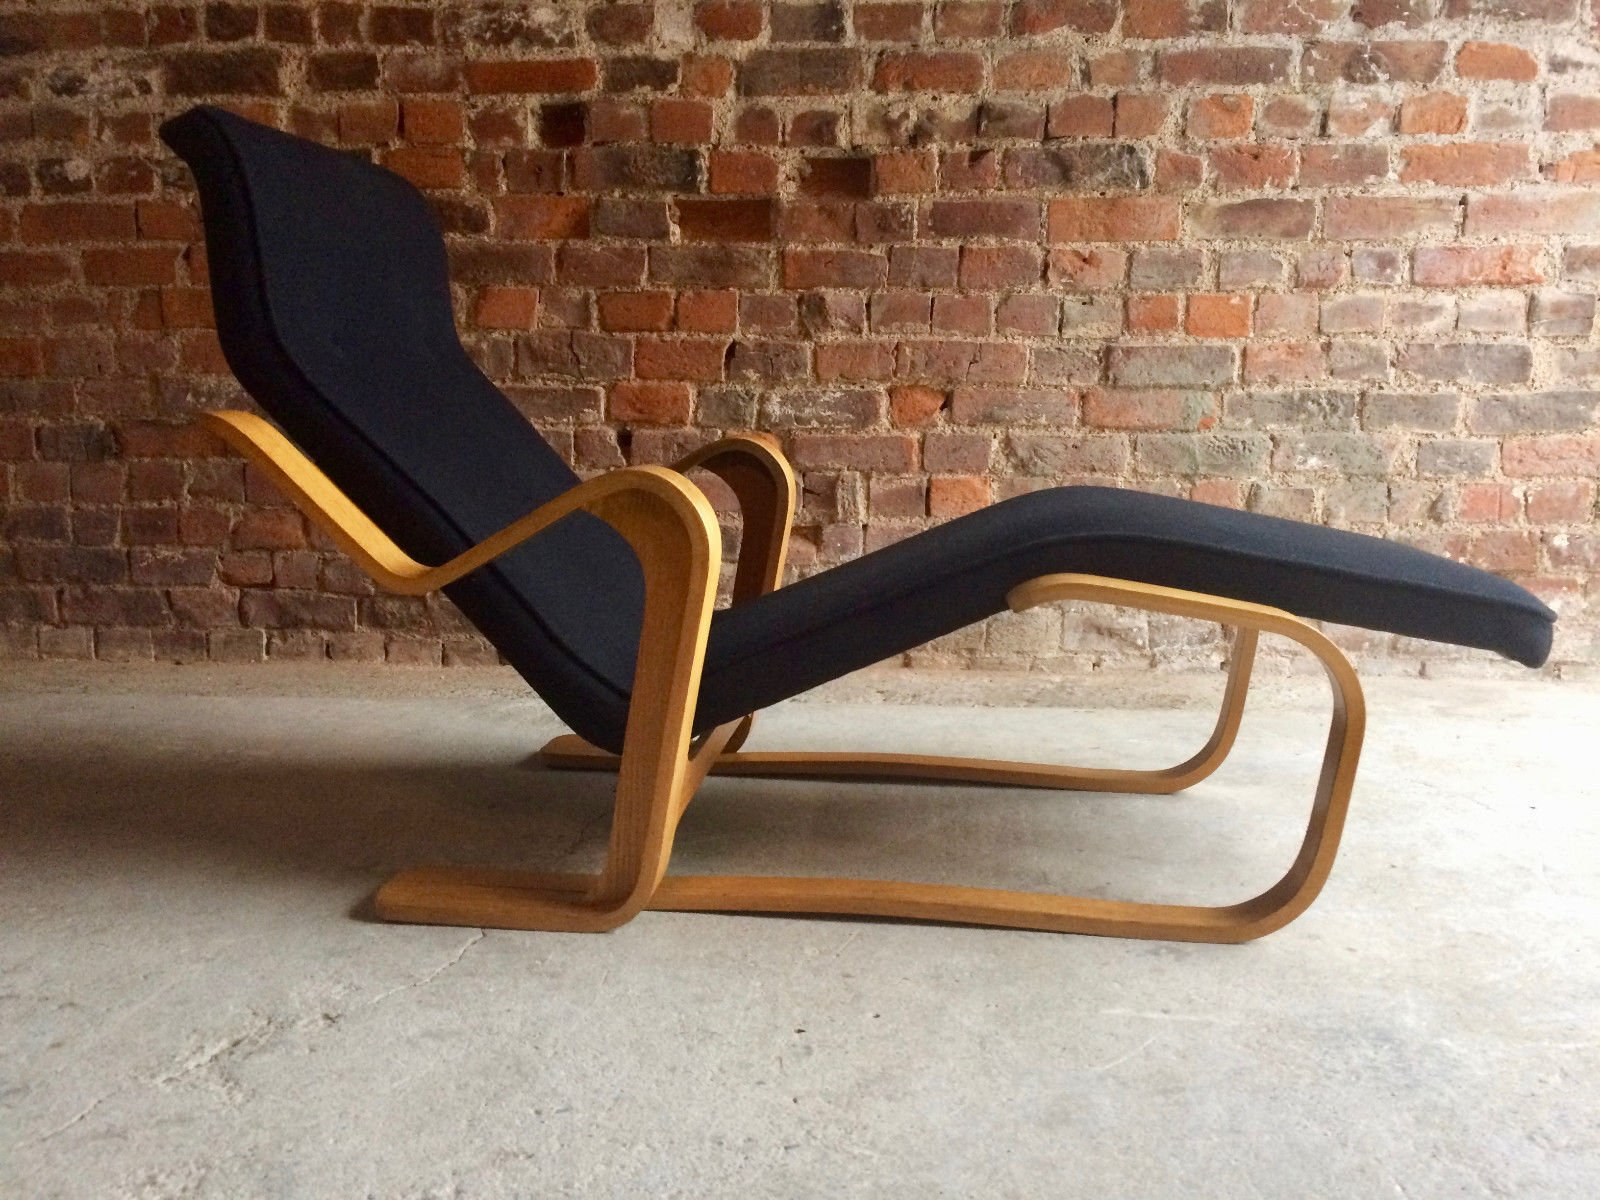 Vintage Black Long Chair by Marcel Breuer for sale at Pamono